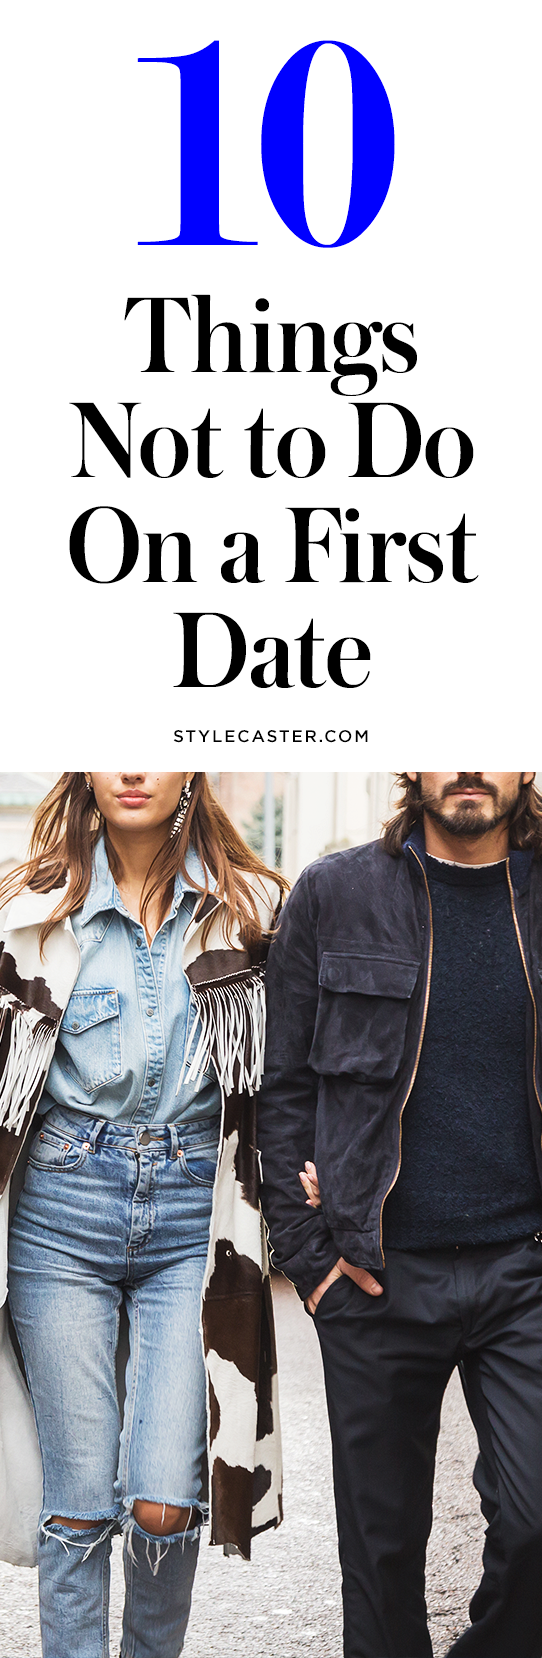 What not to do on a first date | @stylecaster